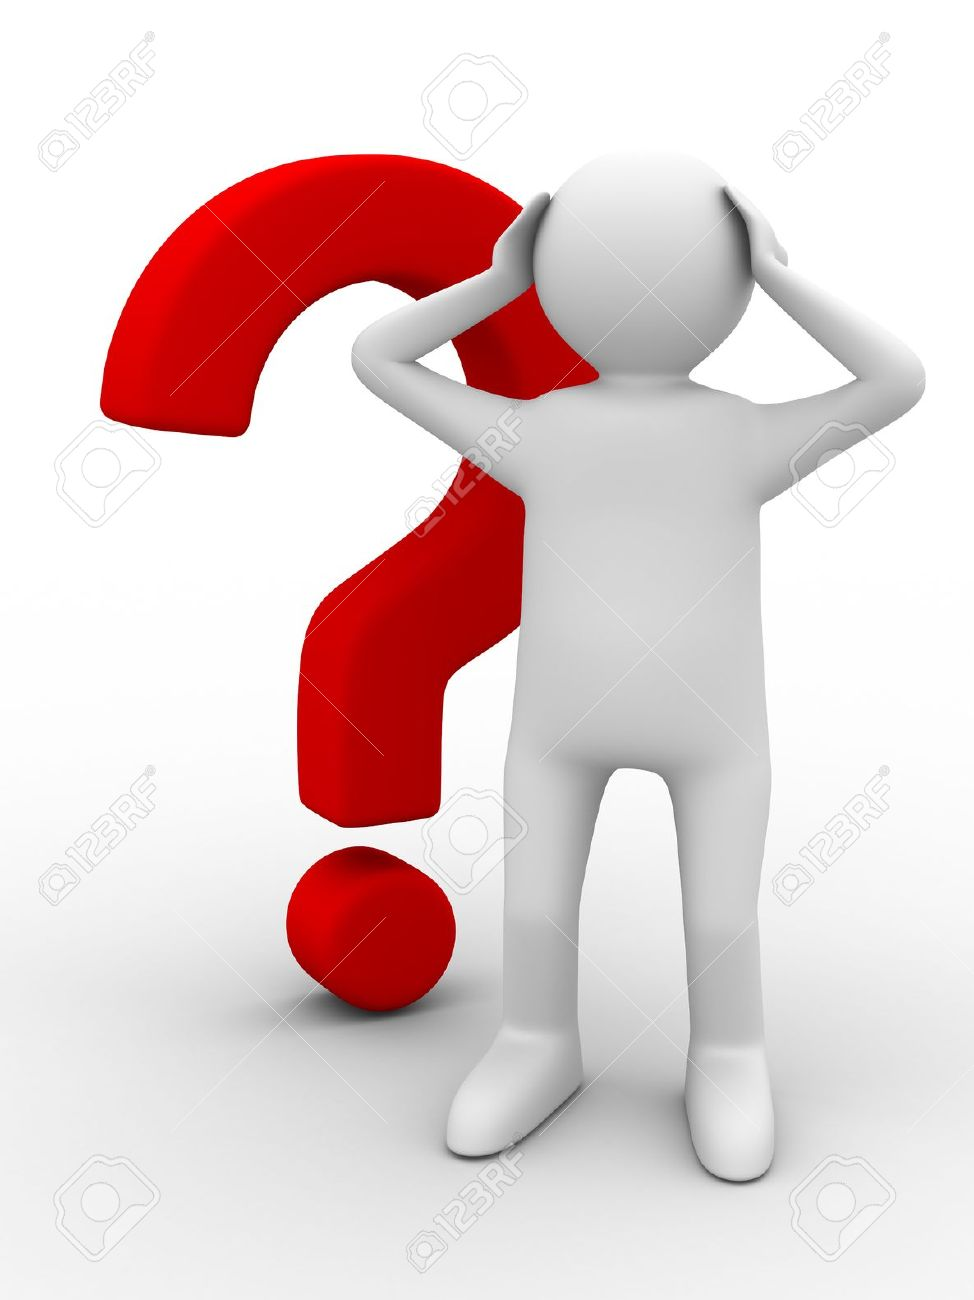 clipart question guy - photo #24